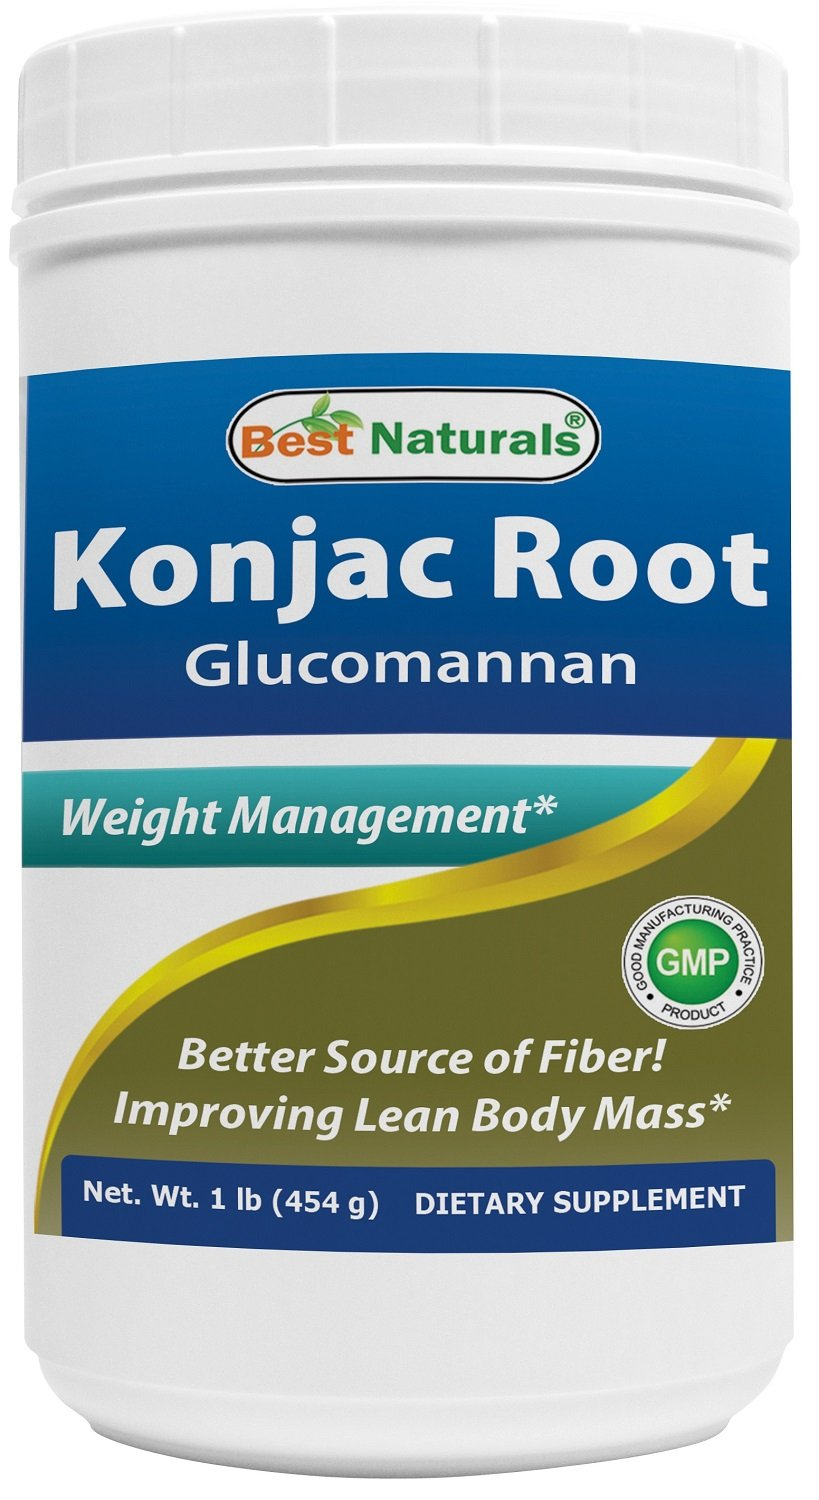 Best Naturals Konjac Root Glucomannan Powder (Non-GMO) - Promotes Healthy Metabolism & Weight Management - 1 Pound by Best Naturals